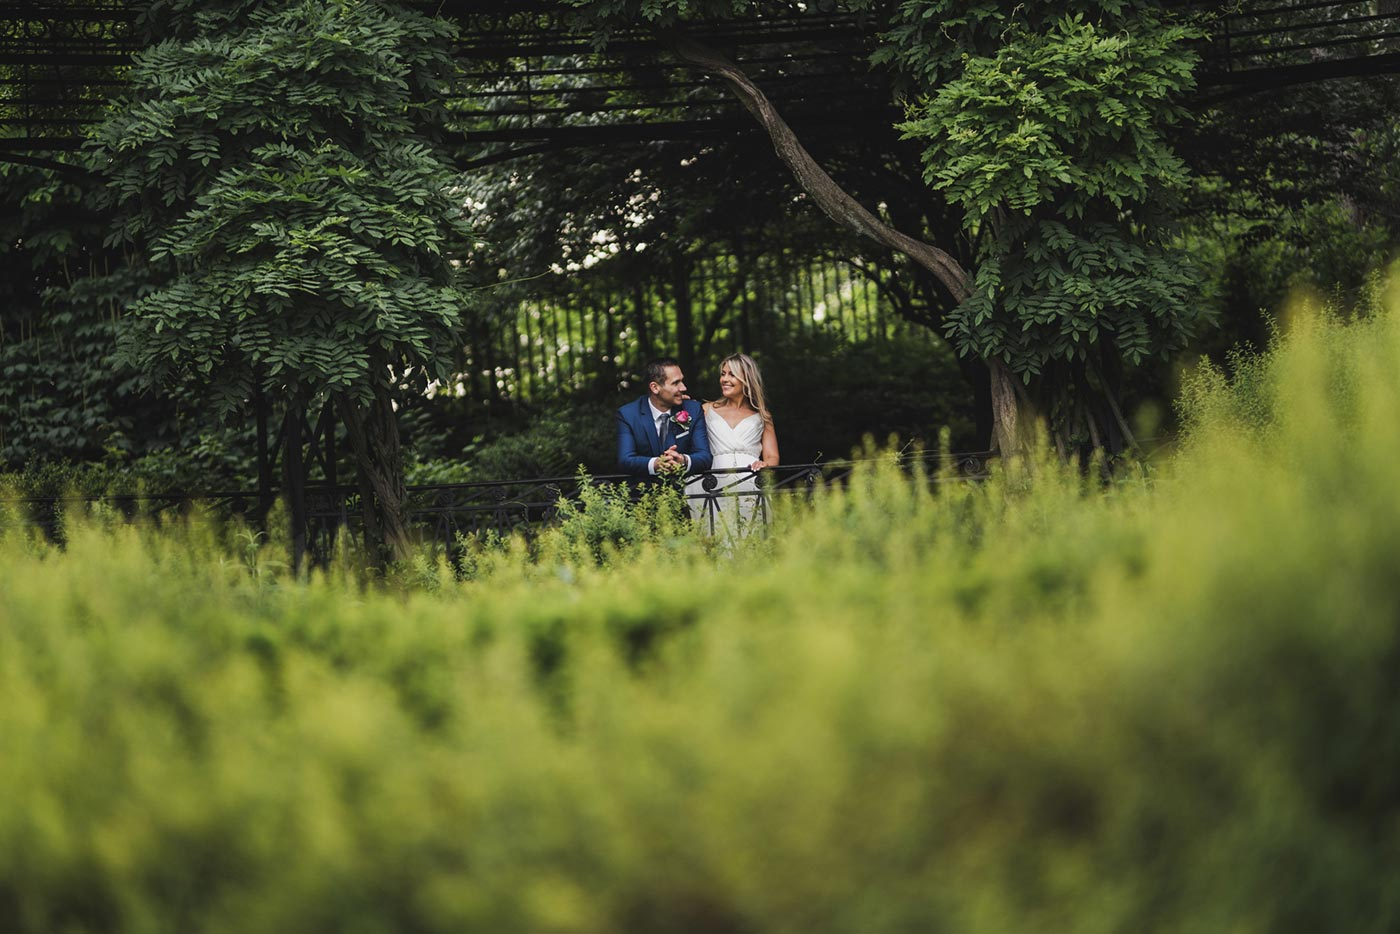 Weddings by Hanel -06.01.19 - Jane & Neil - Conservatory Garden Elopement - 29